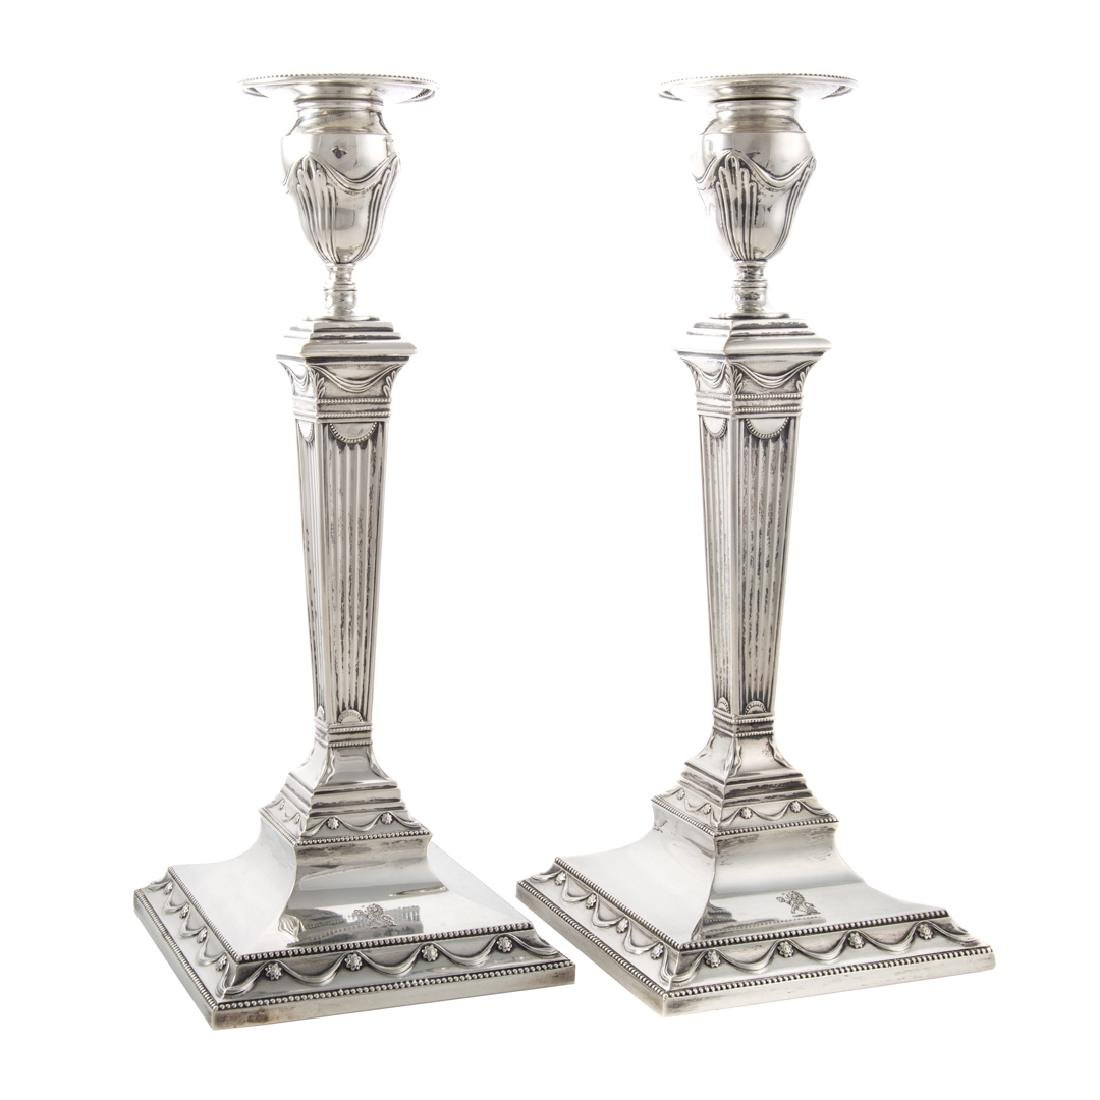 Pair of Tiffany & Co. sterling silver candlesticks - 4